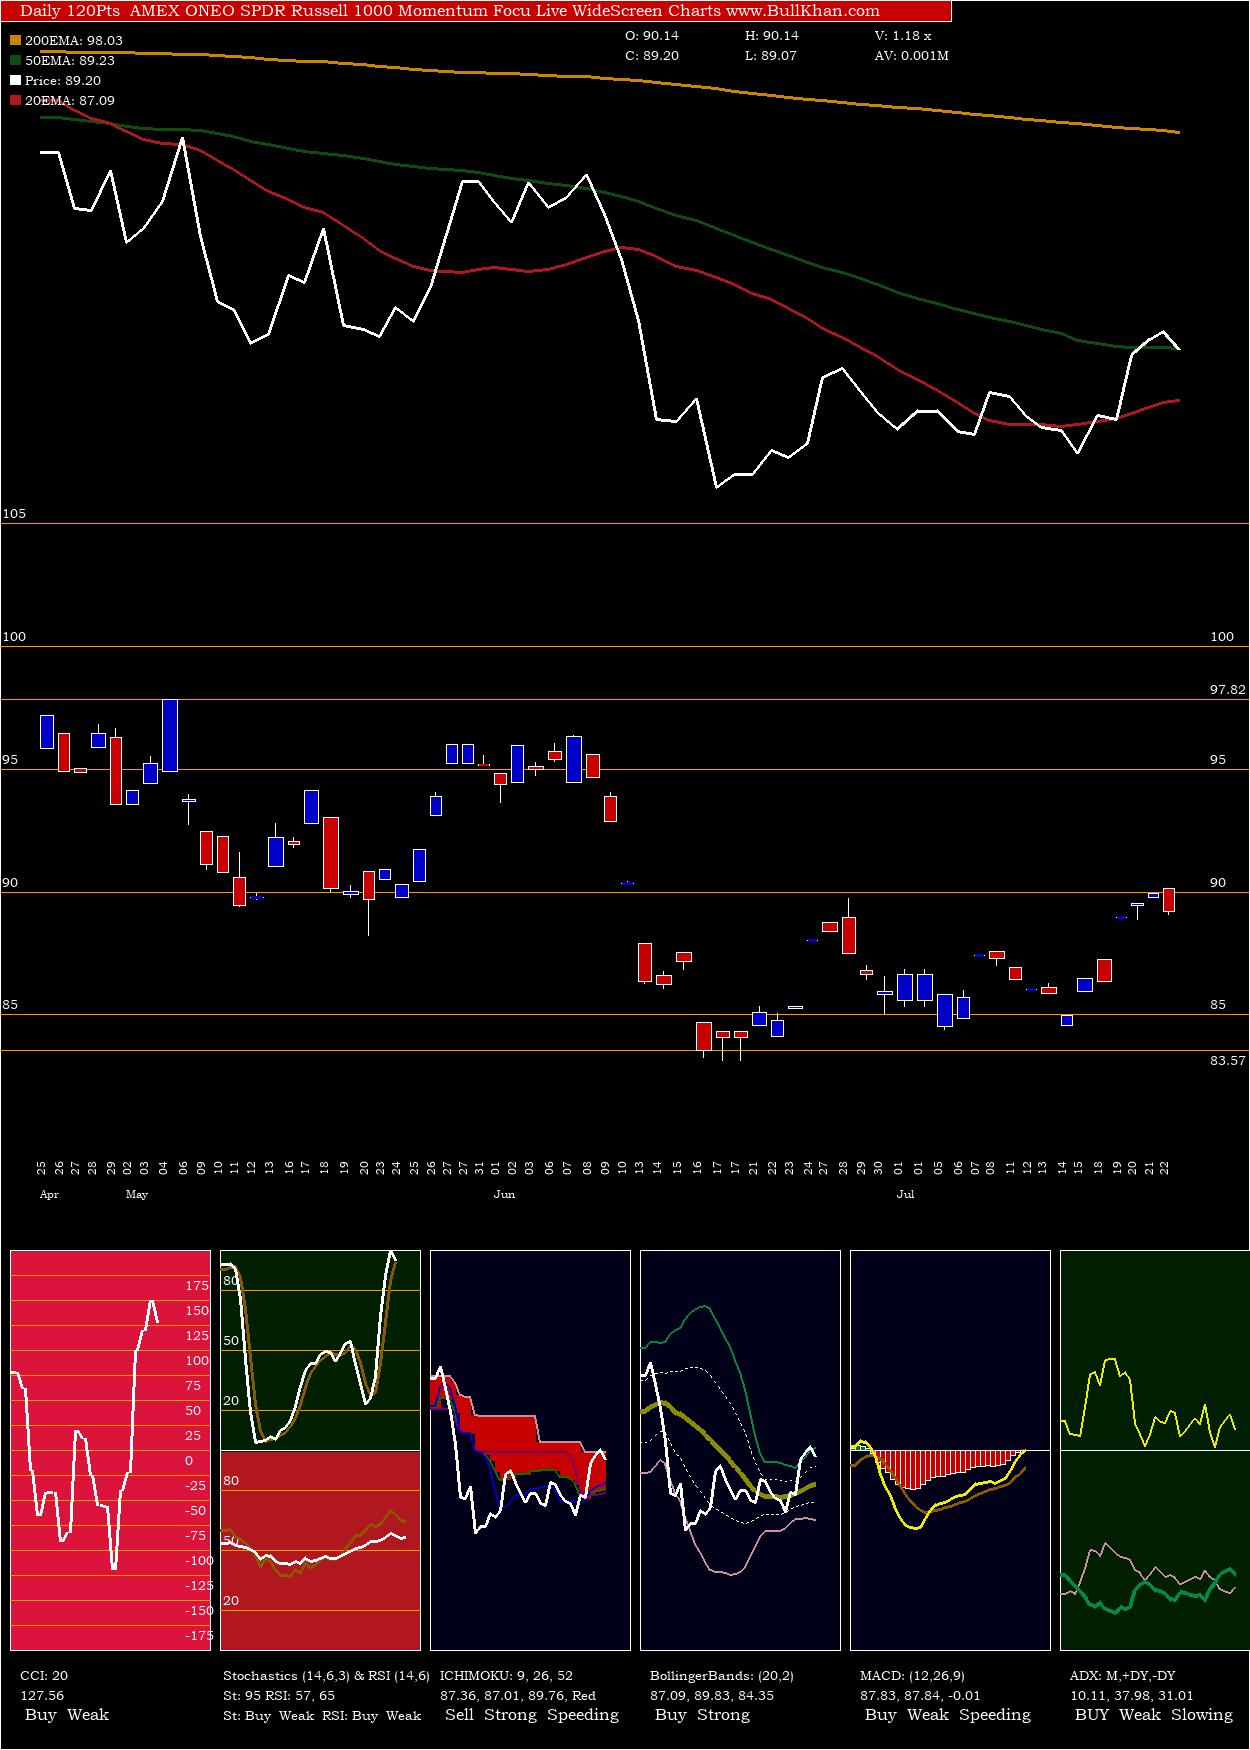 SPDR Russell 1000 Momentum Focu charts and indicators